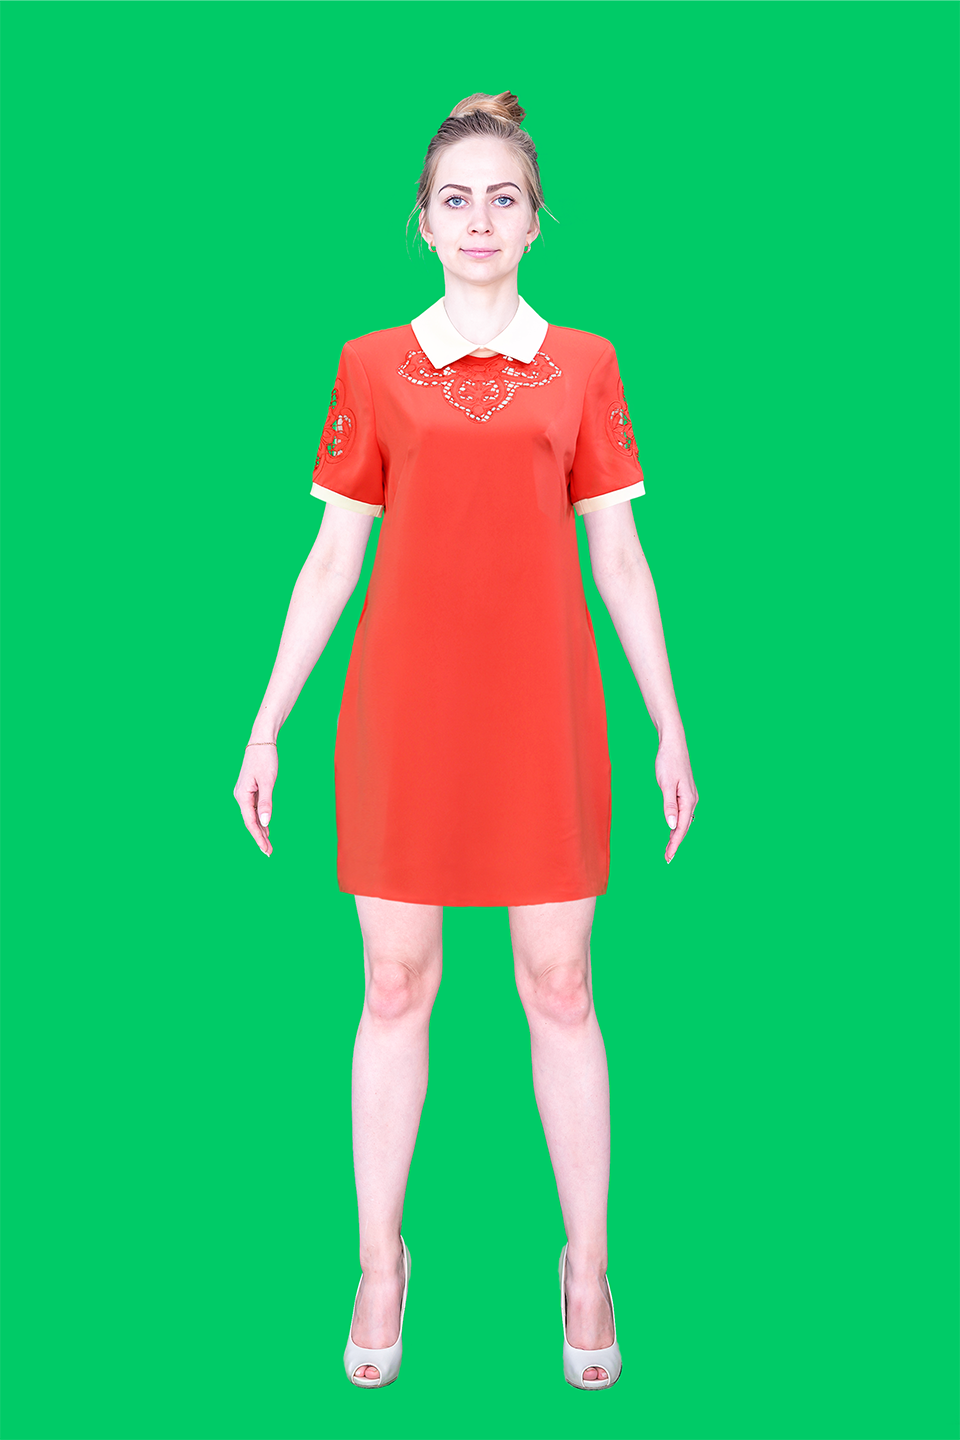 Dress superimposed on photograph